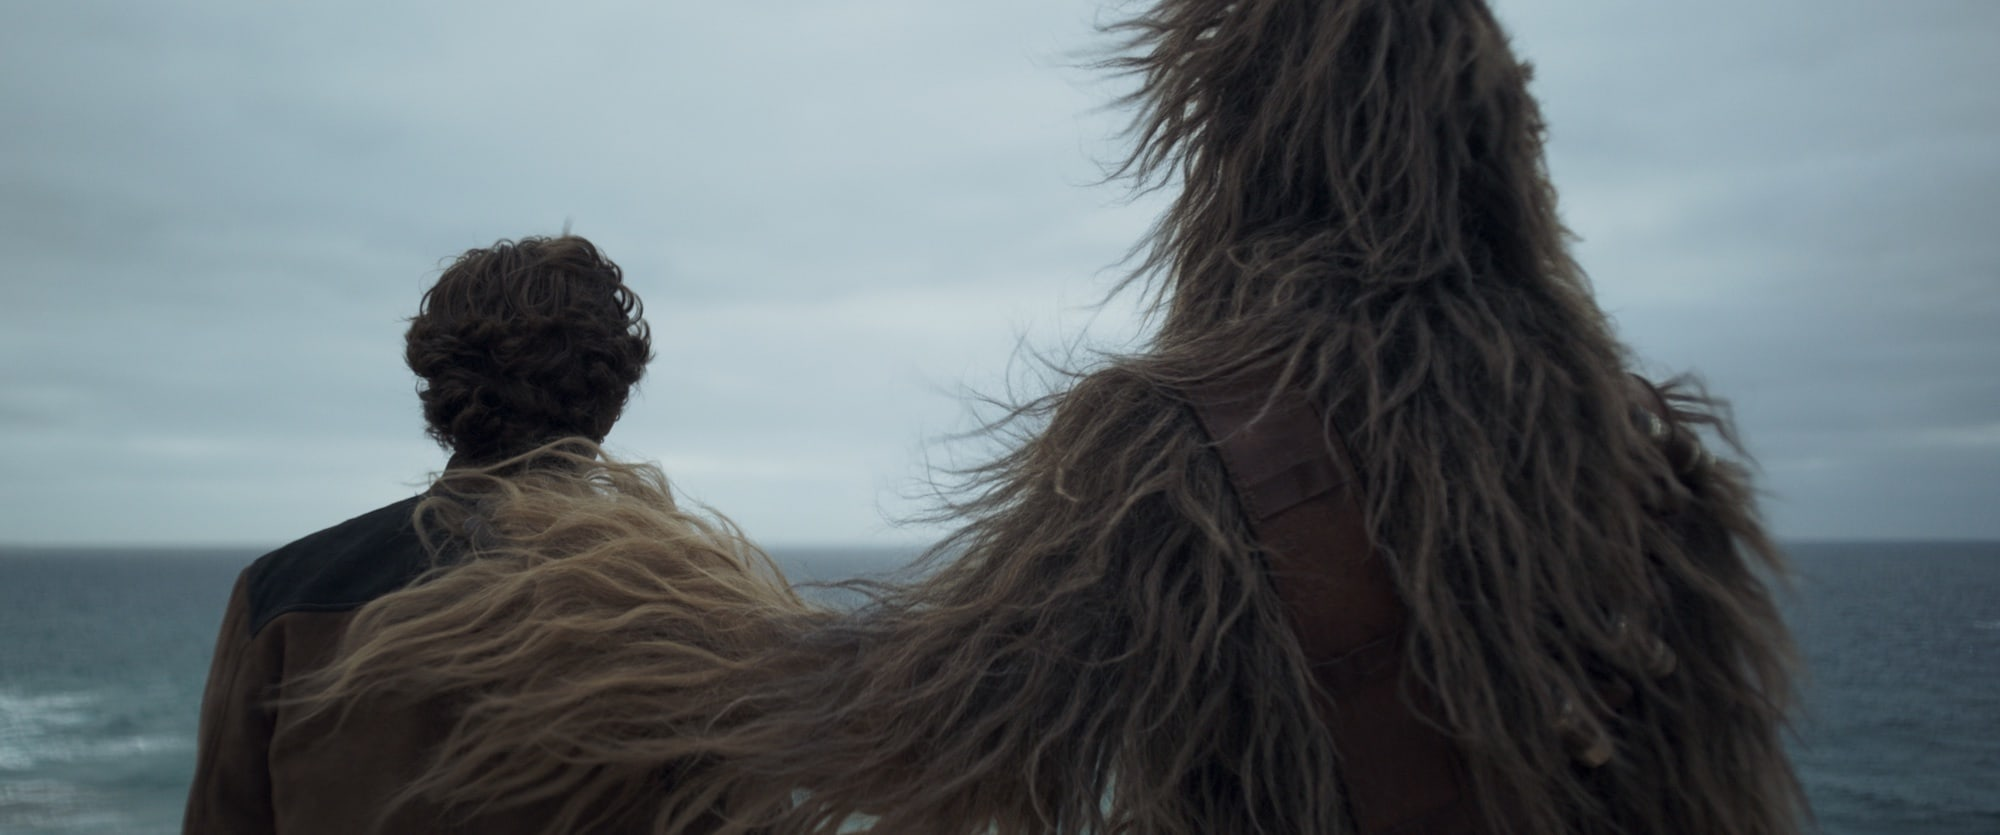 Solo: A Star Wars Story | In Cinemas 24 May